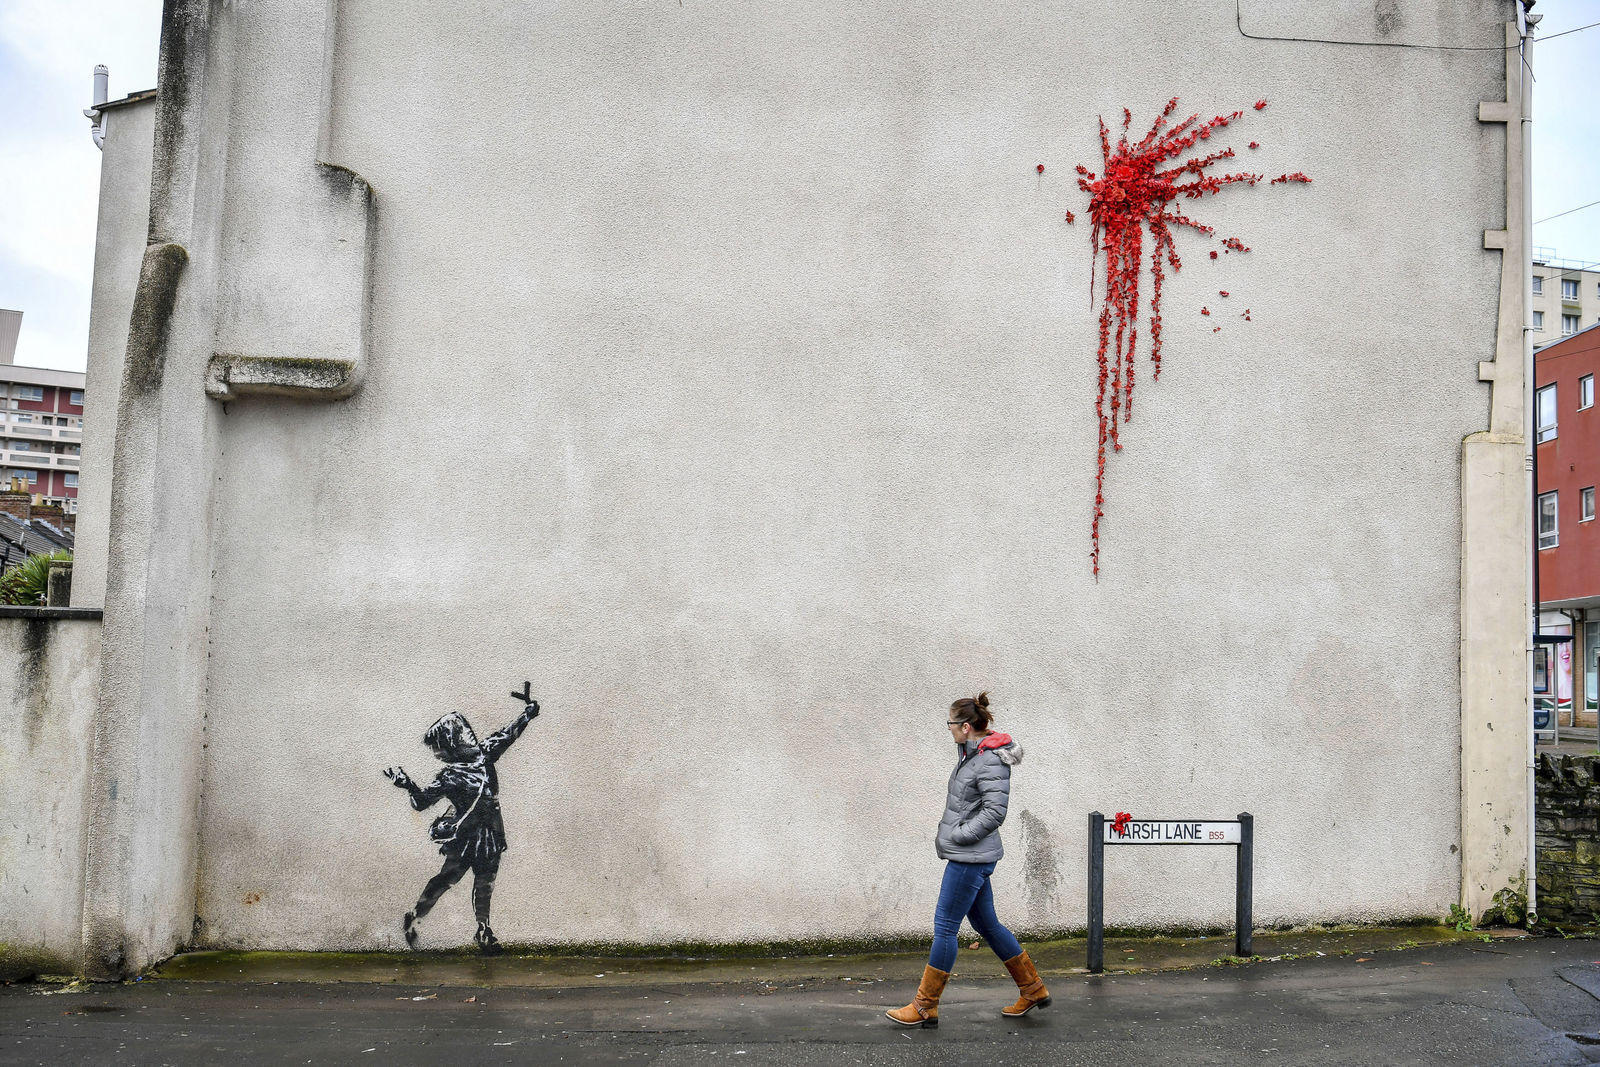 A woman walks past a new artwork on the side of a house in Bristol, England, Thursday Feb. 13, 2020, which has been confirmed as the work of street artist Banksy. (Ben Birchall/PA via AP)